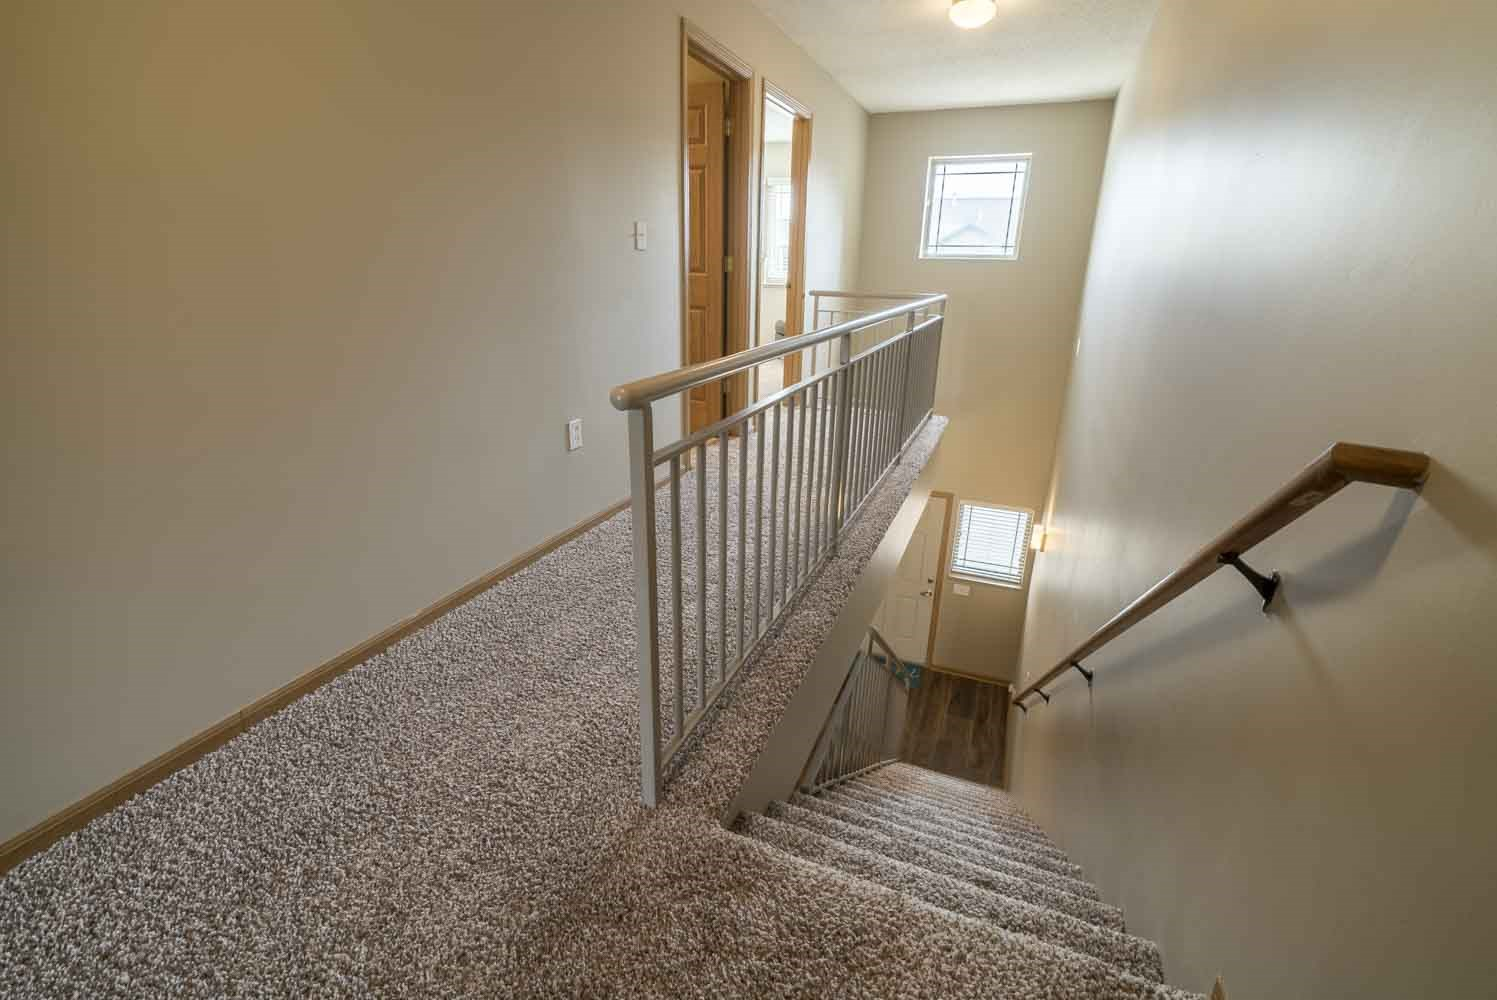 Stairwell to upstairs in a two-bedroom townhome at Southwind Villas in southwest Omaha in La Vista, NE, 68128